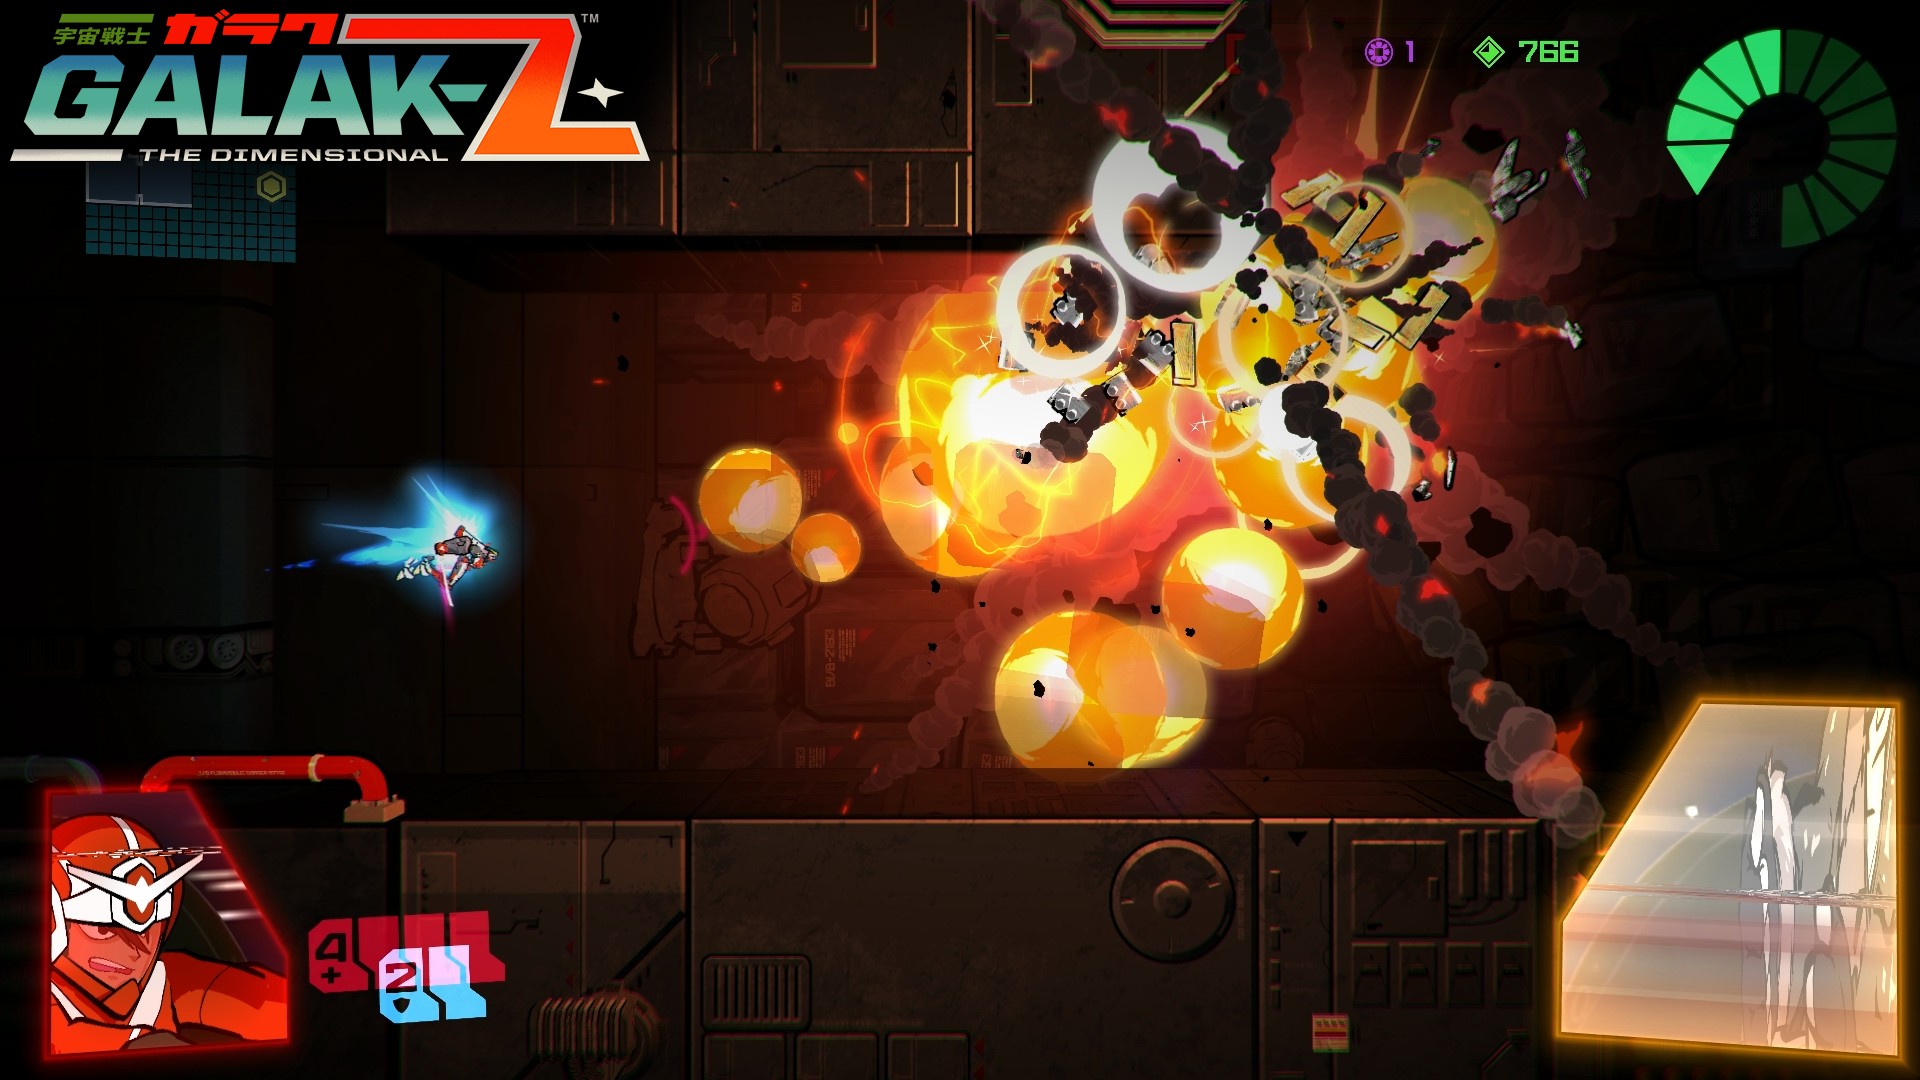 How much you're treated to Galak-Z's spectacular explosions depends on how many missiles you have left.